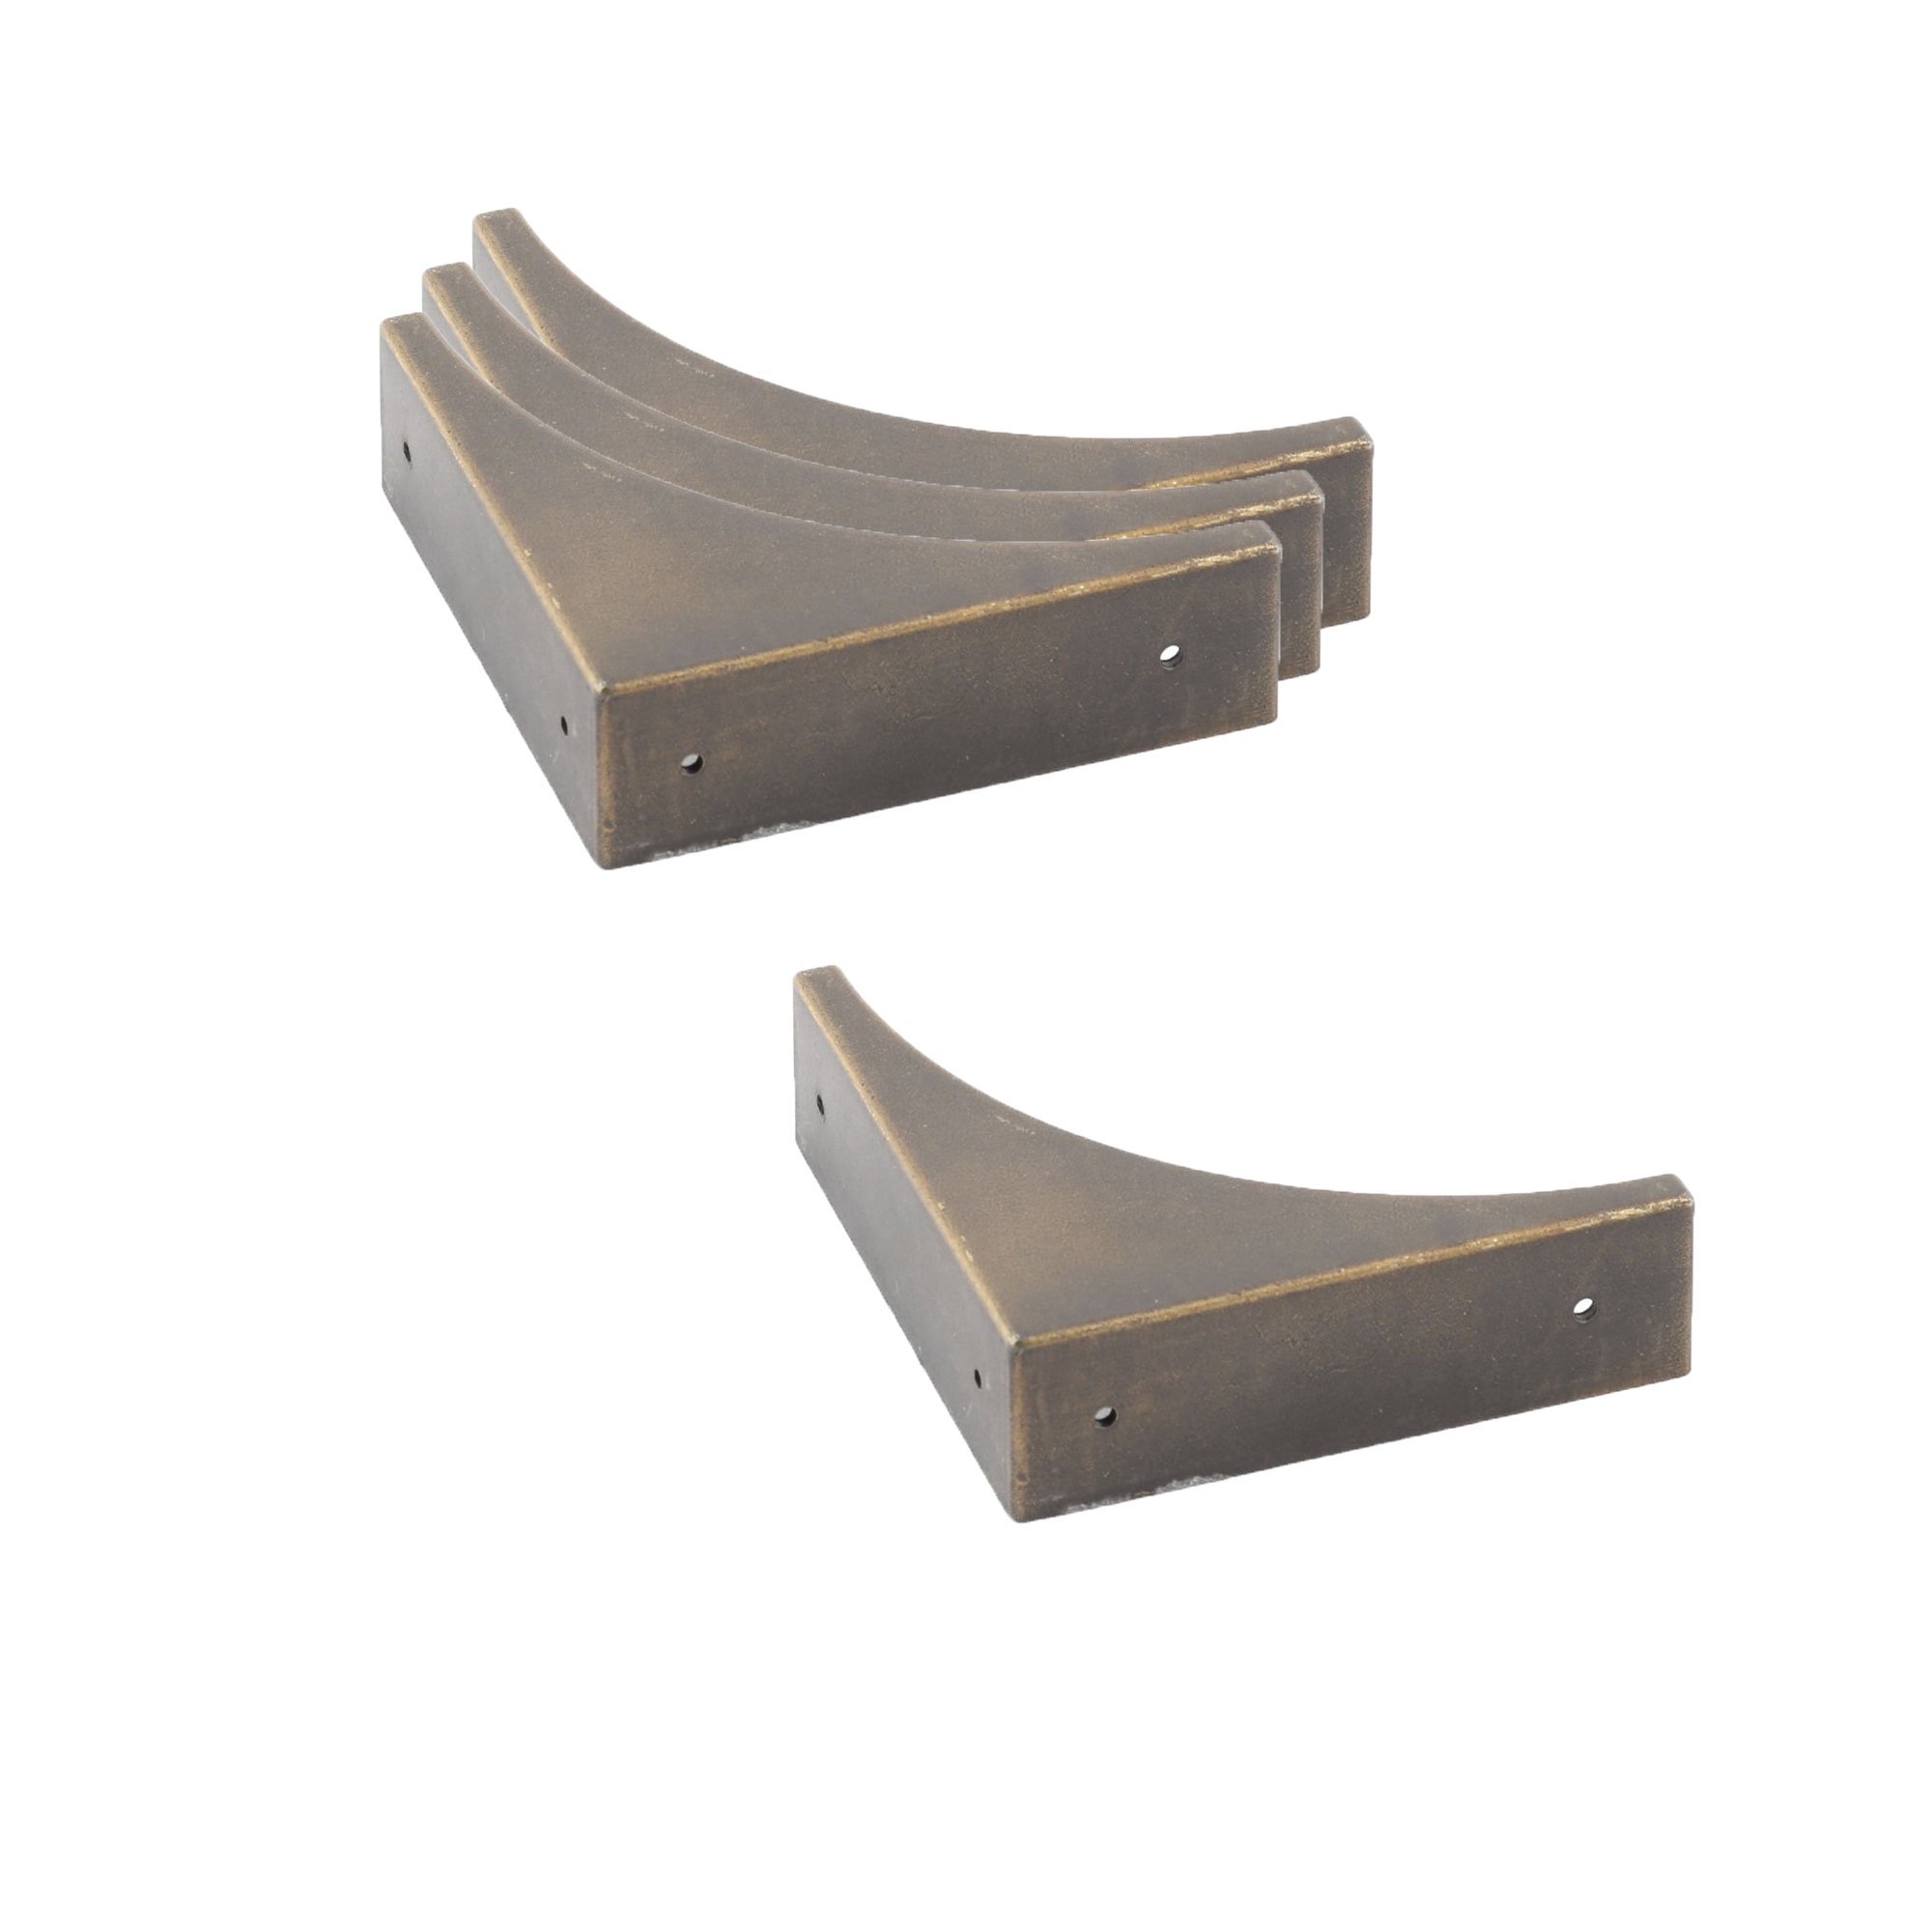 Antrader Metal Box Corner Protector Edge Safety Guard Bronze Tone 66 x 66mm Pack of 4